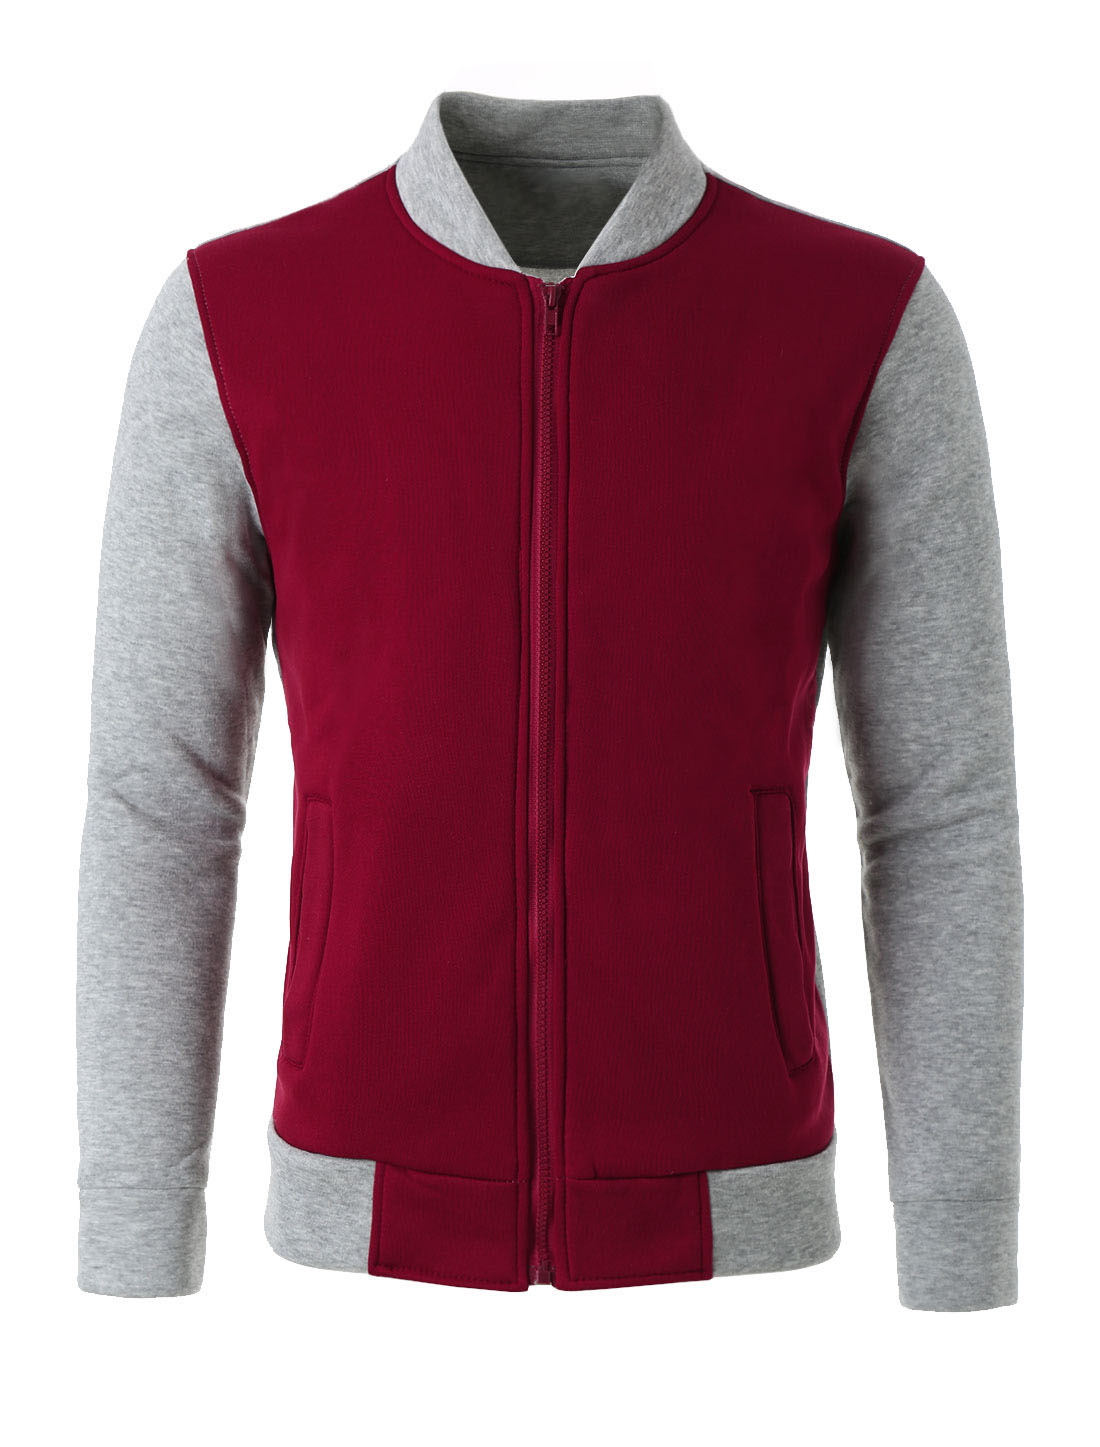 Men Stand Collar Colorblock Zipper Front Varsity Jacket Burgundy Light Gray L